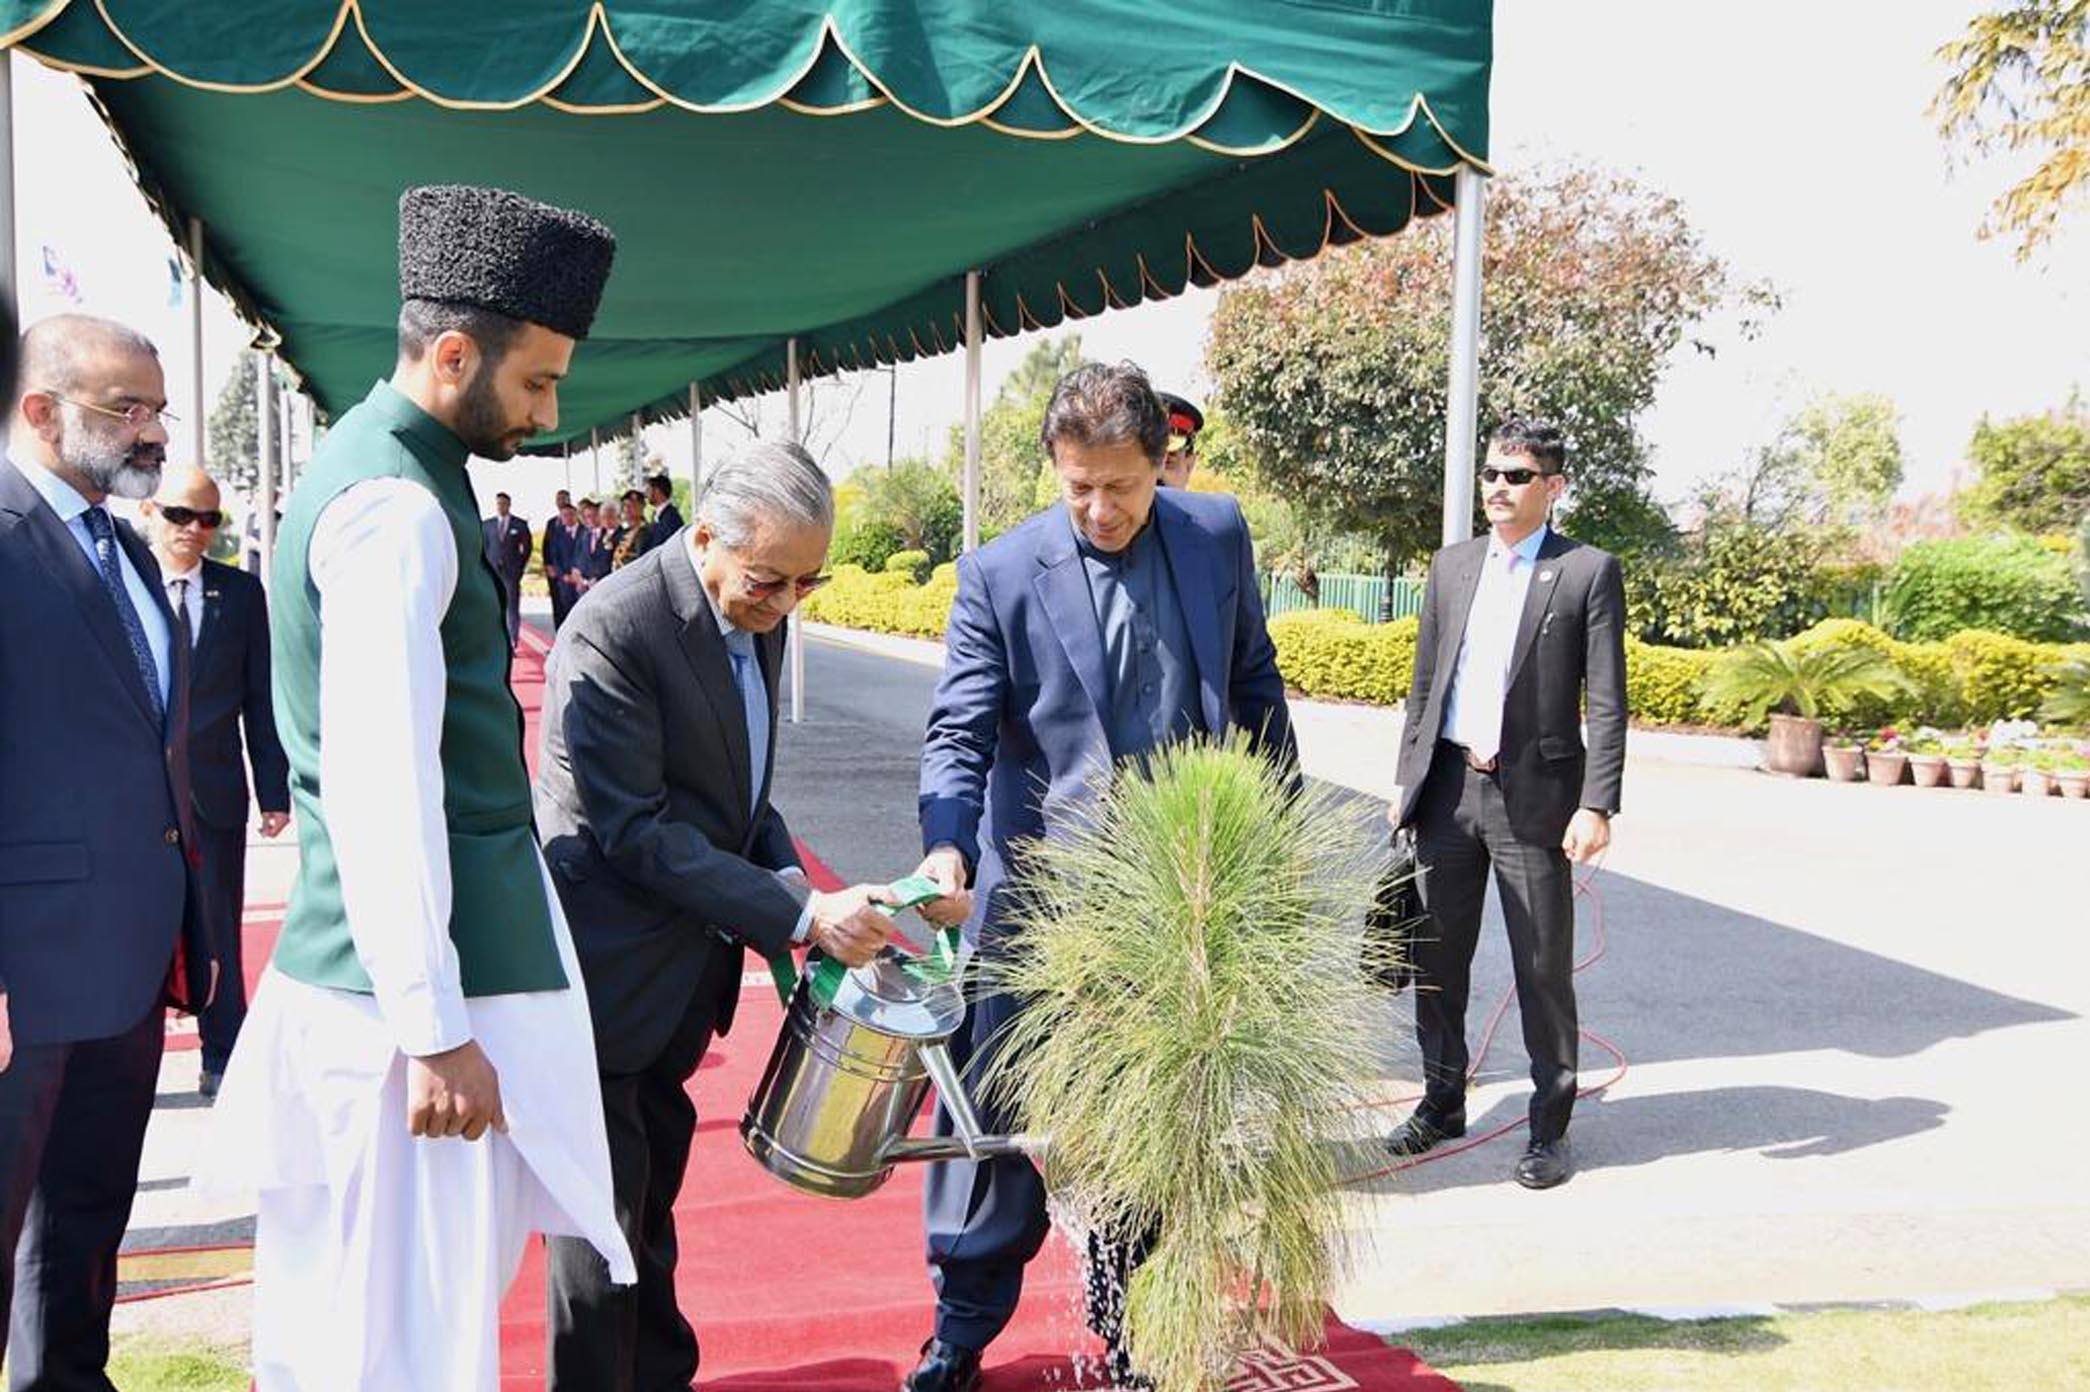 'Leaders Are Those Who Have Clear Ideology and Take Positions' Imran Khan Praised Dr Mahathir